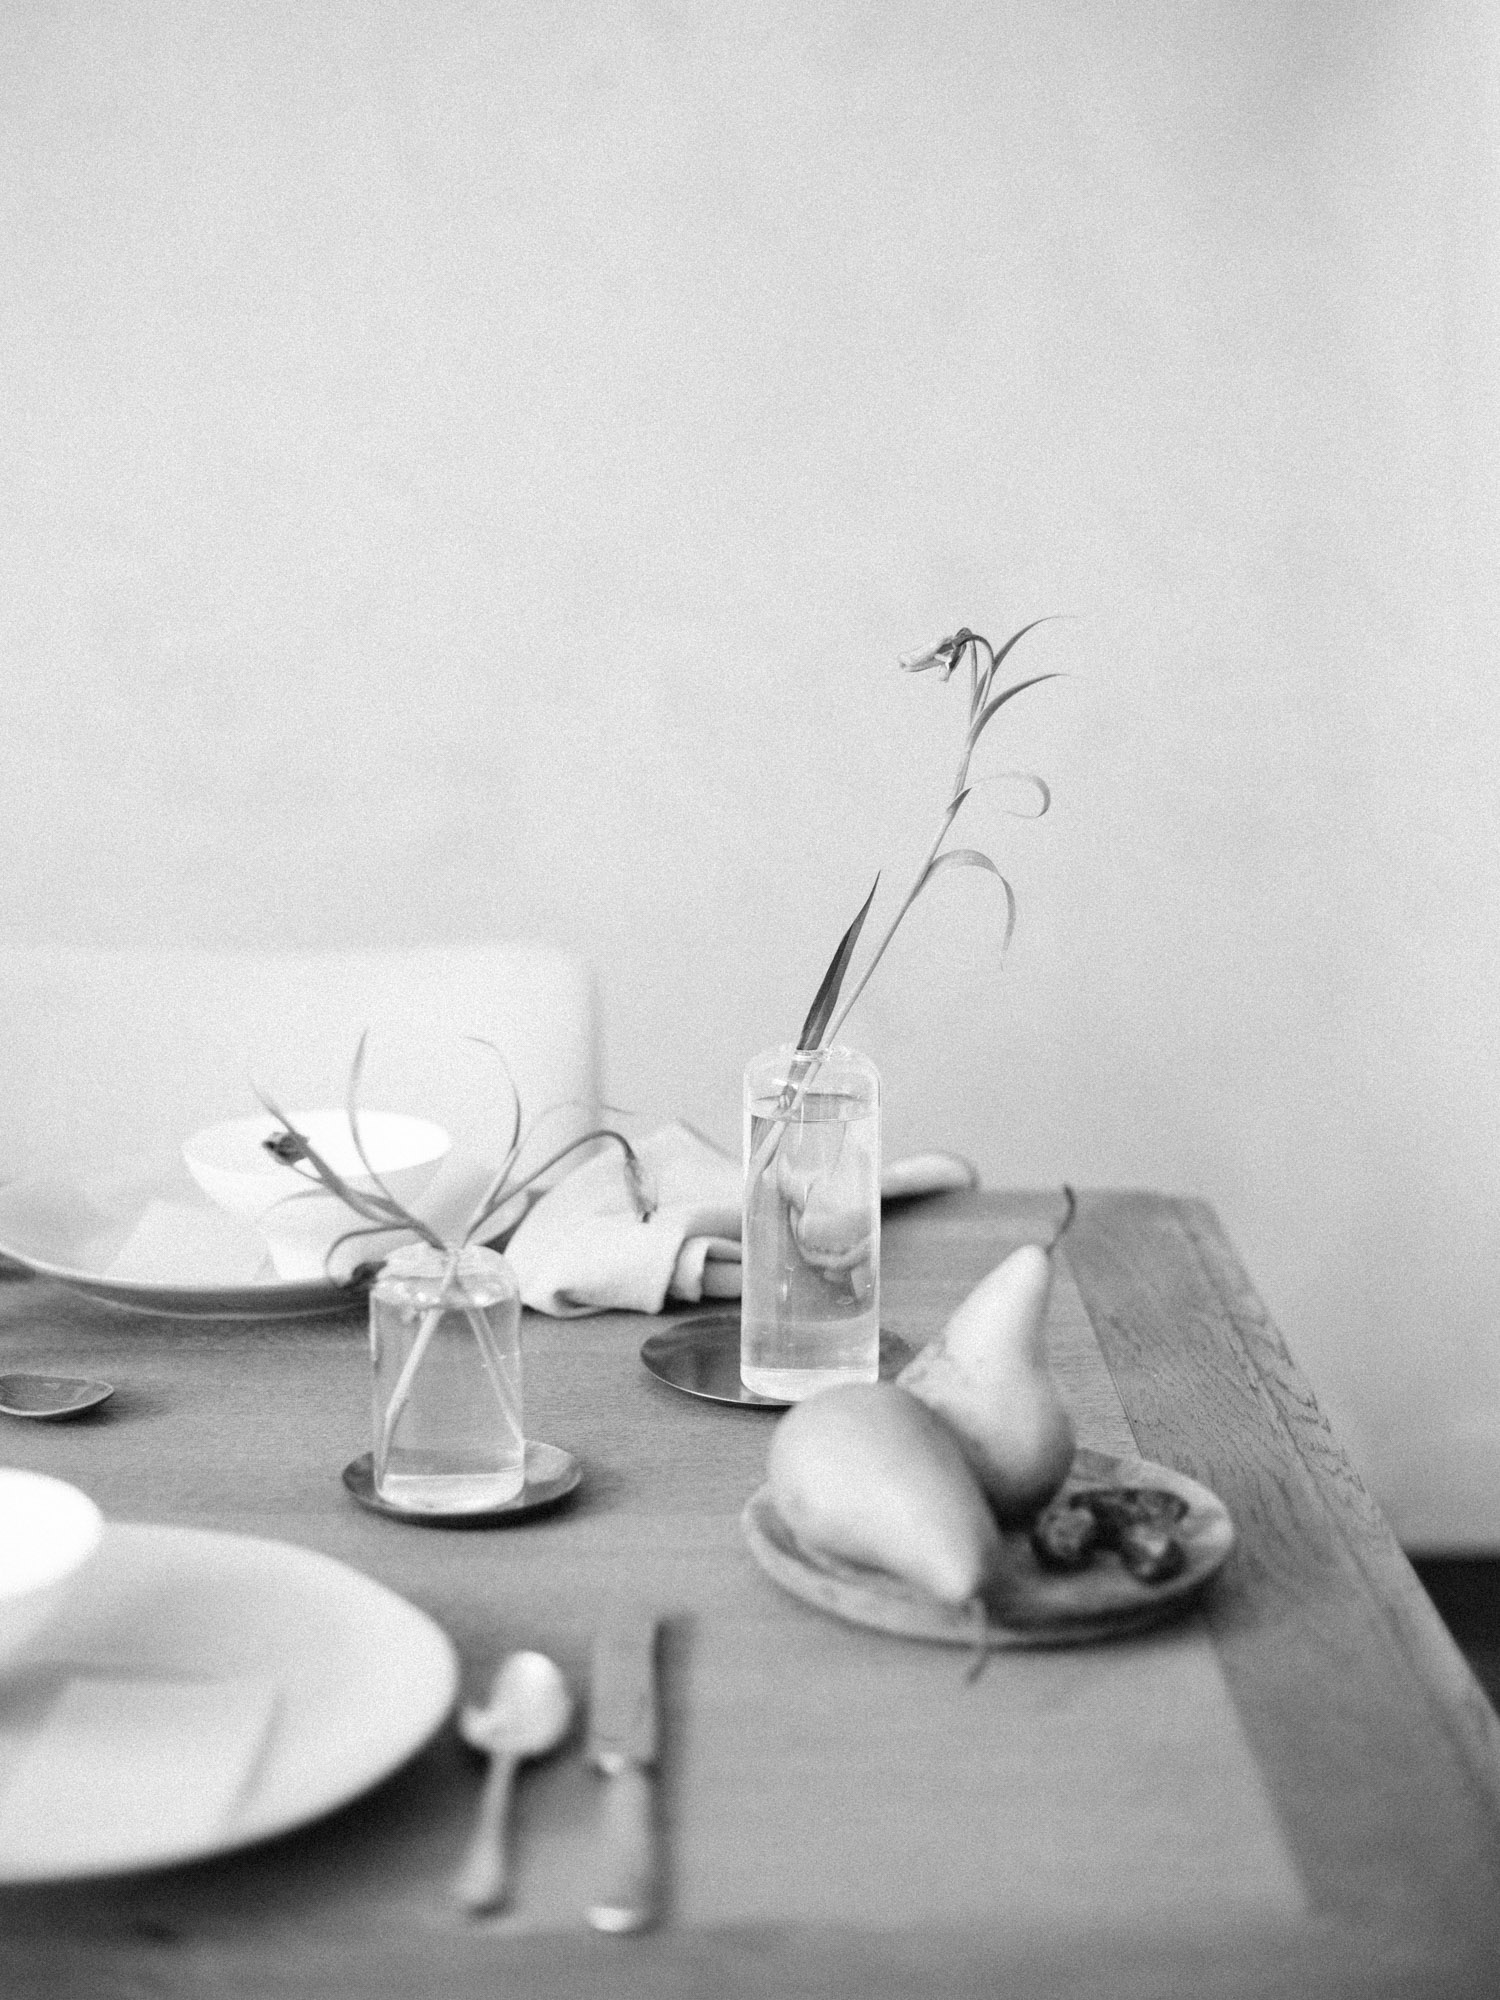 vases with minimal greenery and a plate of pears and figs rest on a wood table